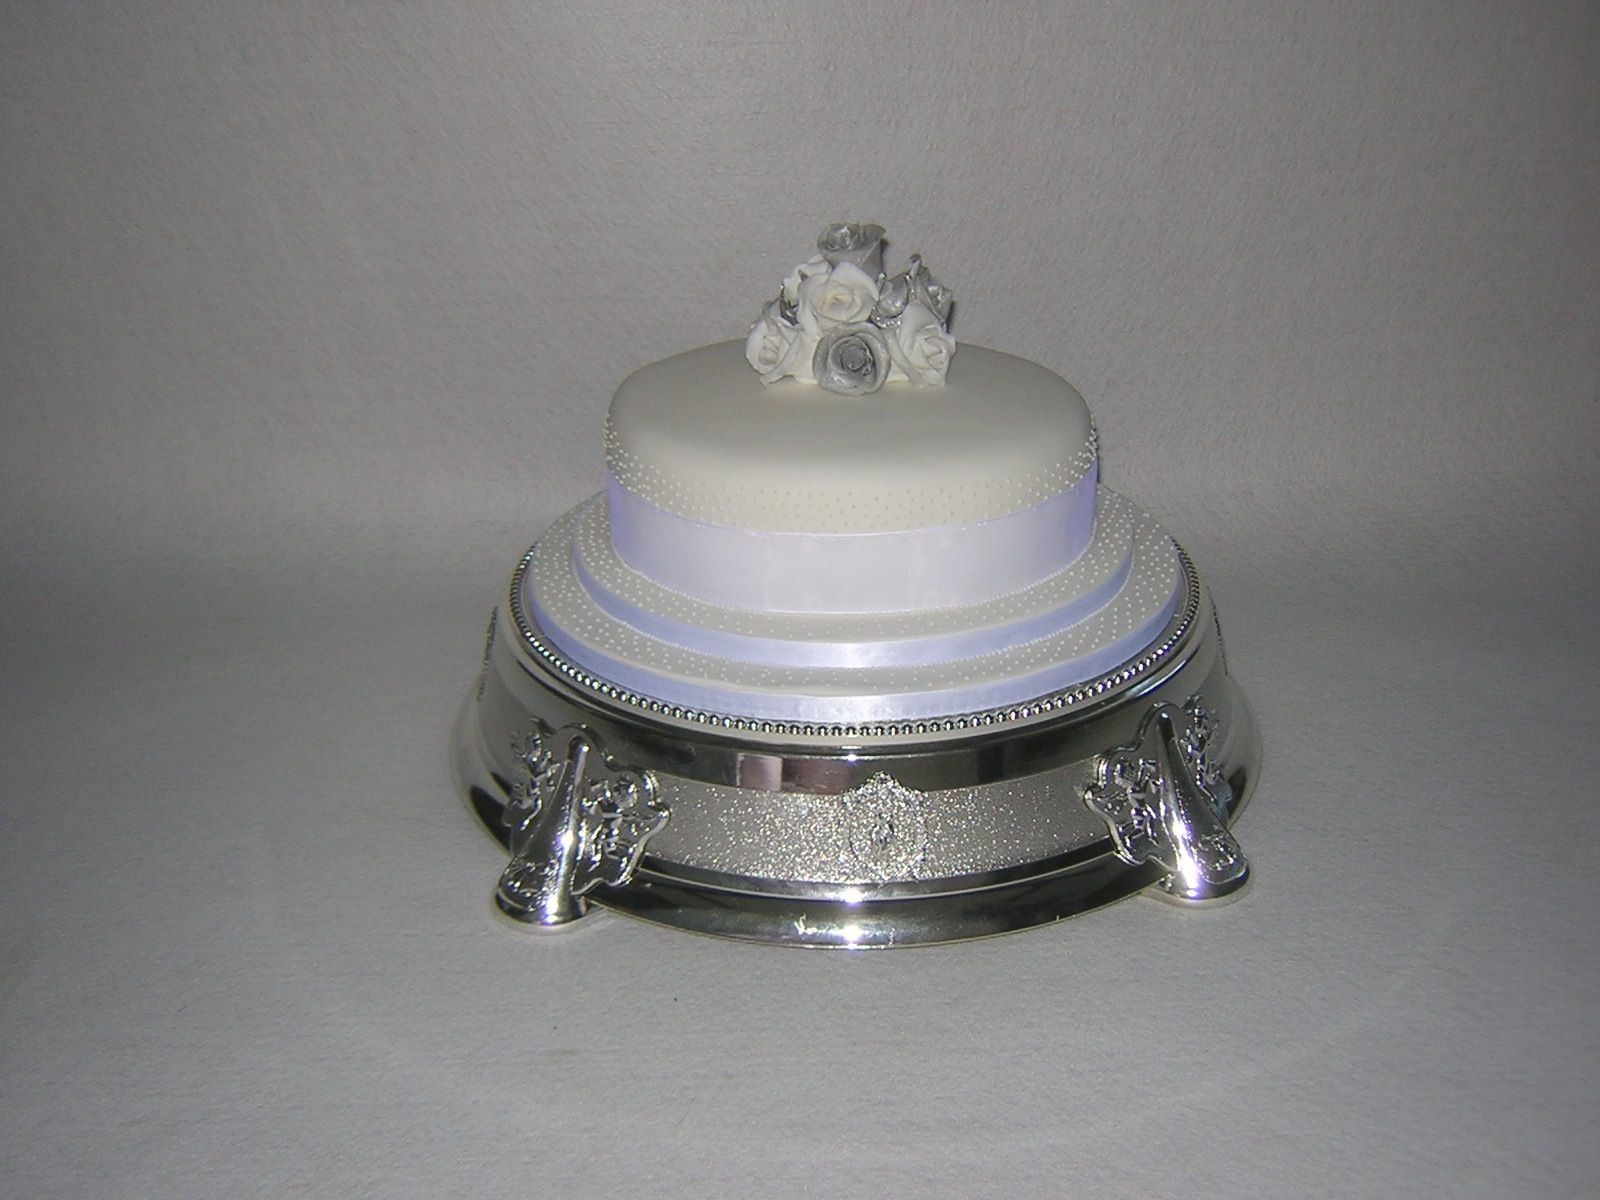 Black and white wedding cake designs look their best with black satin ribbons wrapped around the tiers and fresh white flowers. Description from lyzain.com. I searched for this on bing.com/images